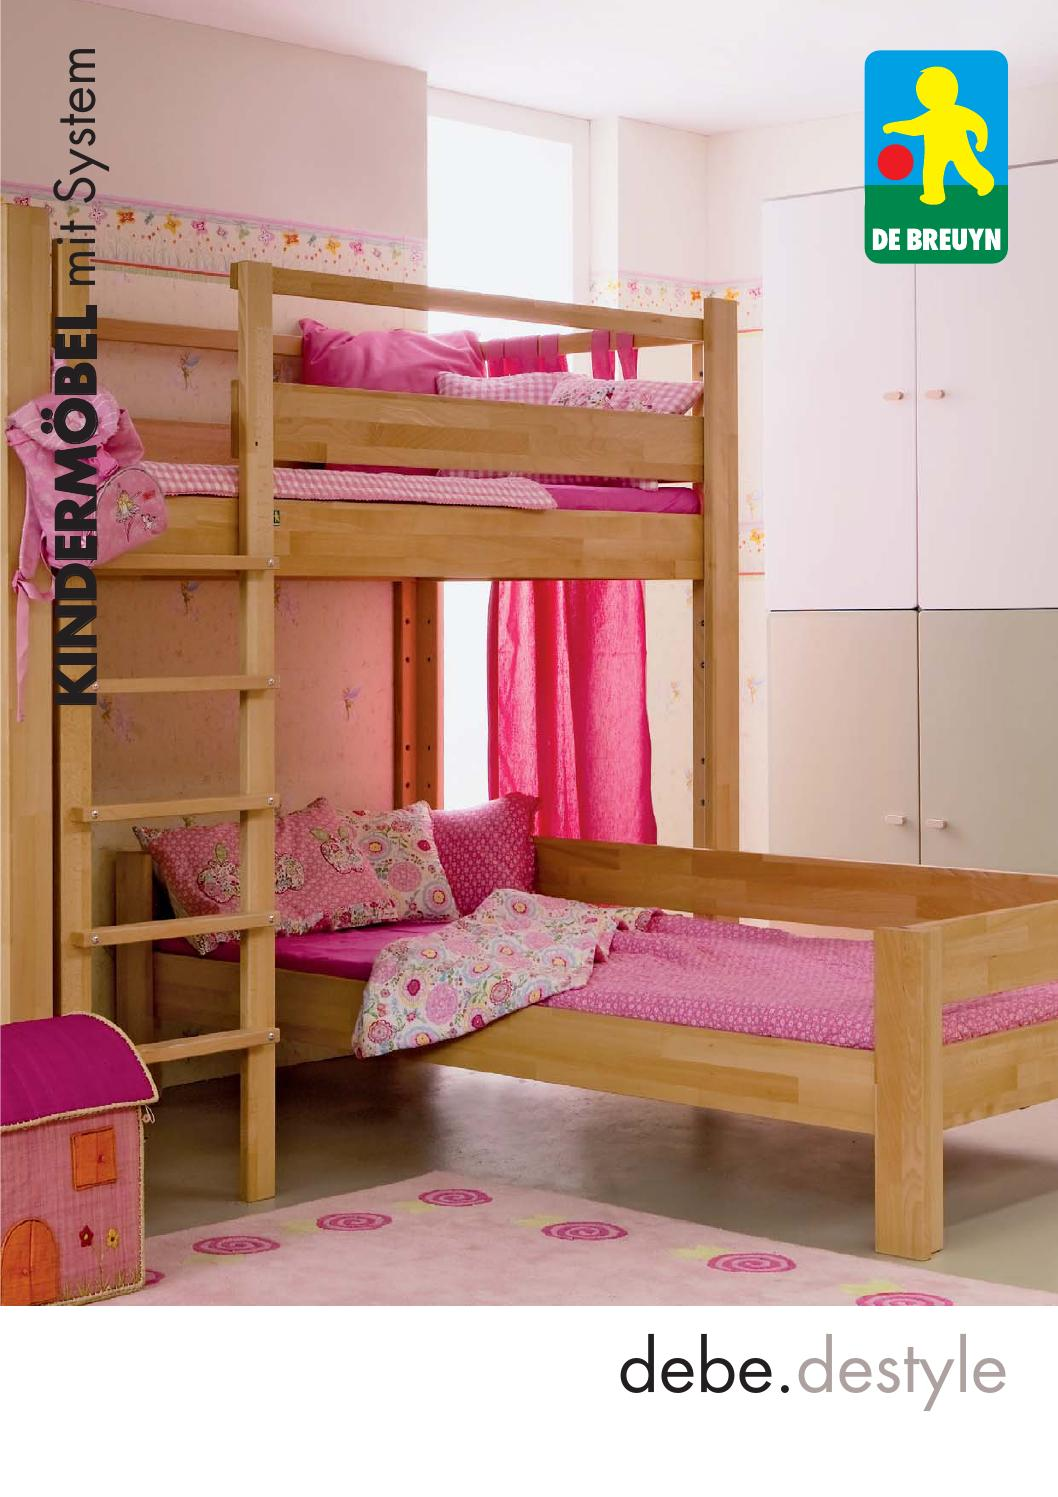 de breuyn kinderm bel mit system by j rg de. Black Bedroom Furniture Sets. Home Design Ideas